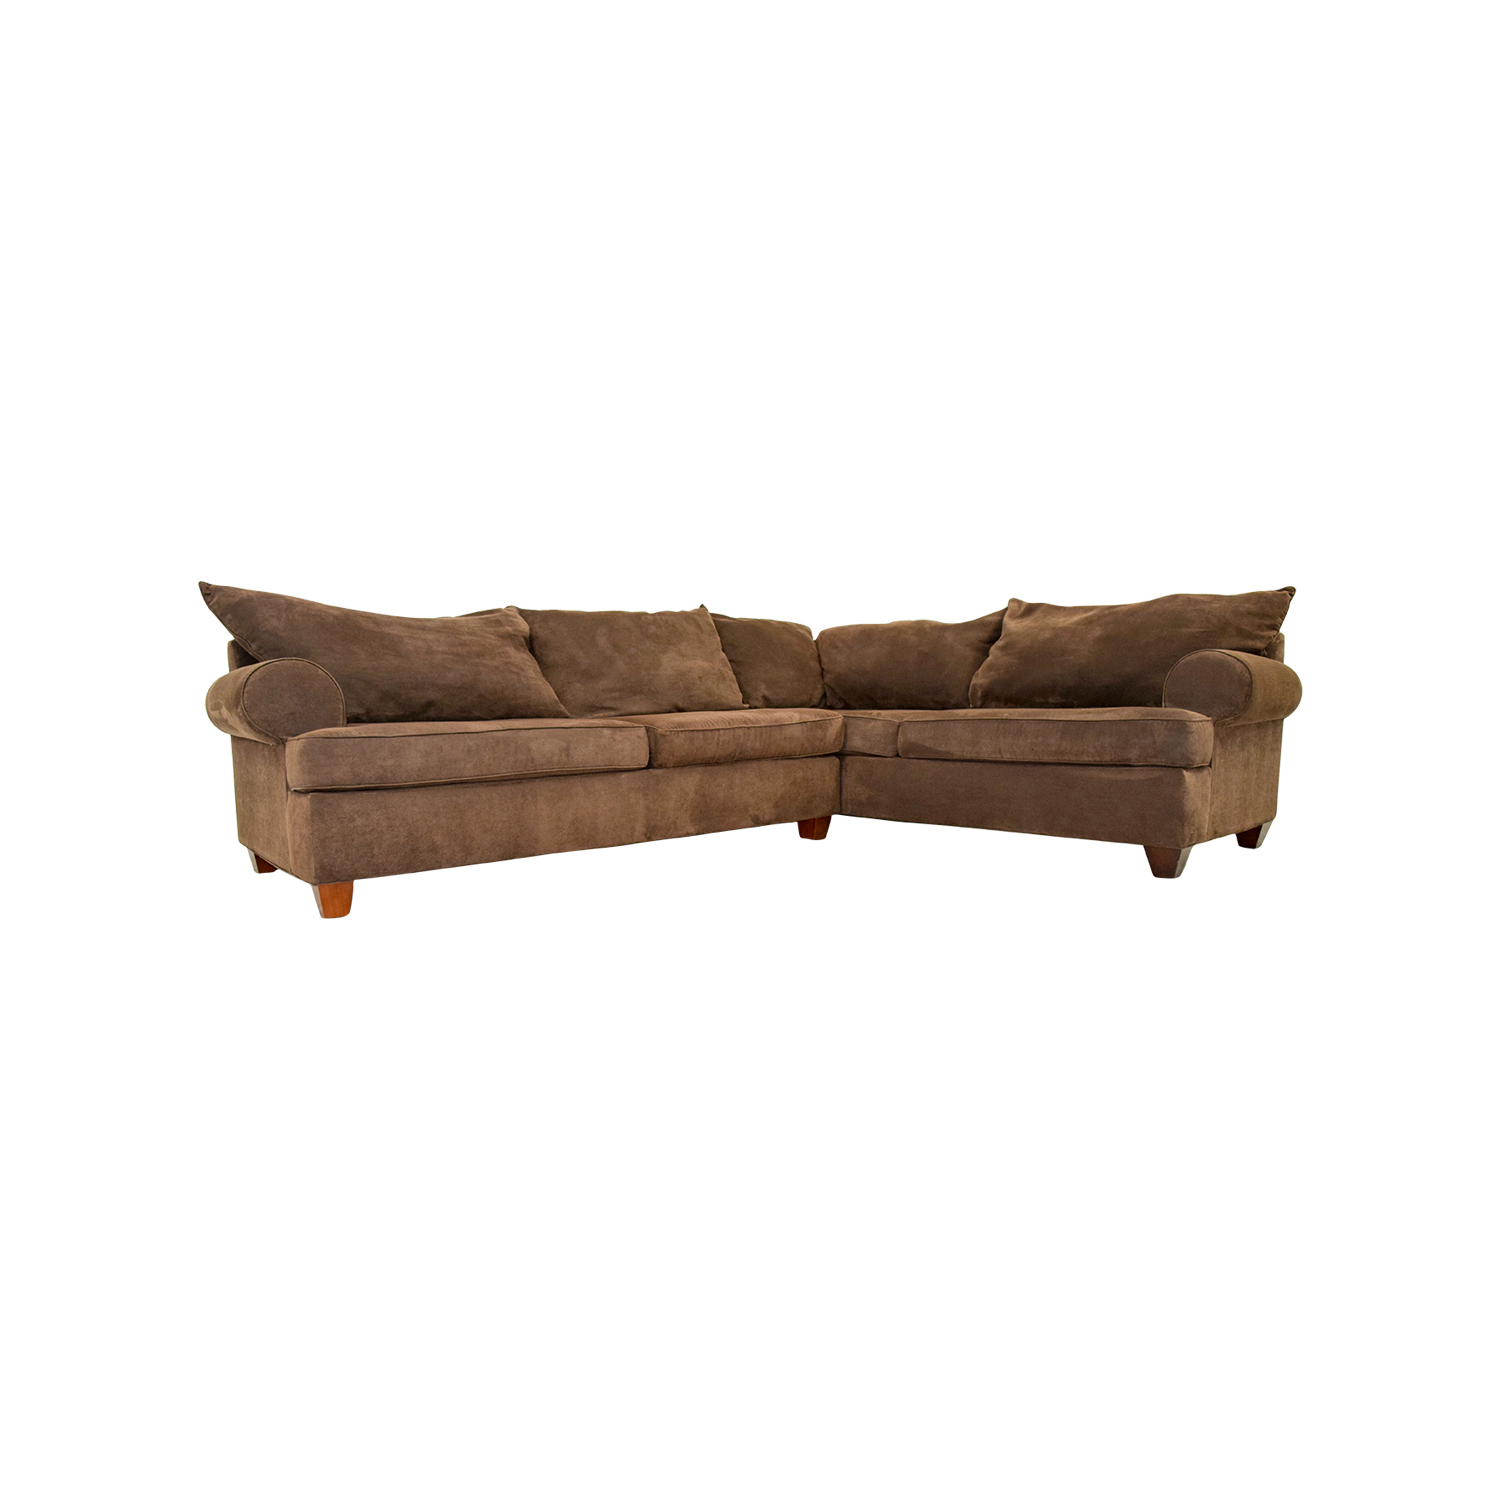 75% OFF - Brown Corduroy L-Shaped Sectional Couch / Sofas